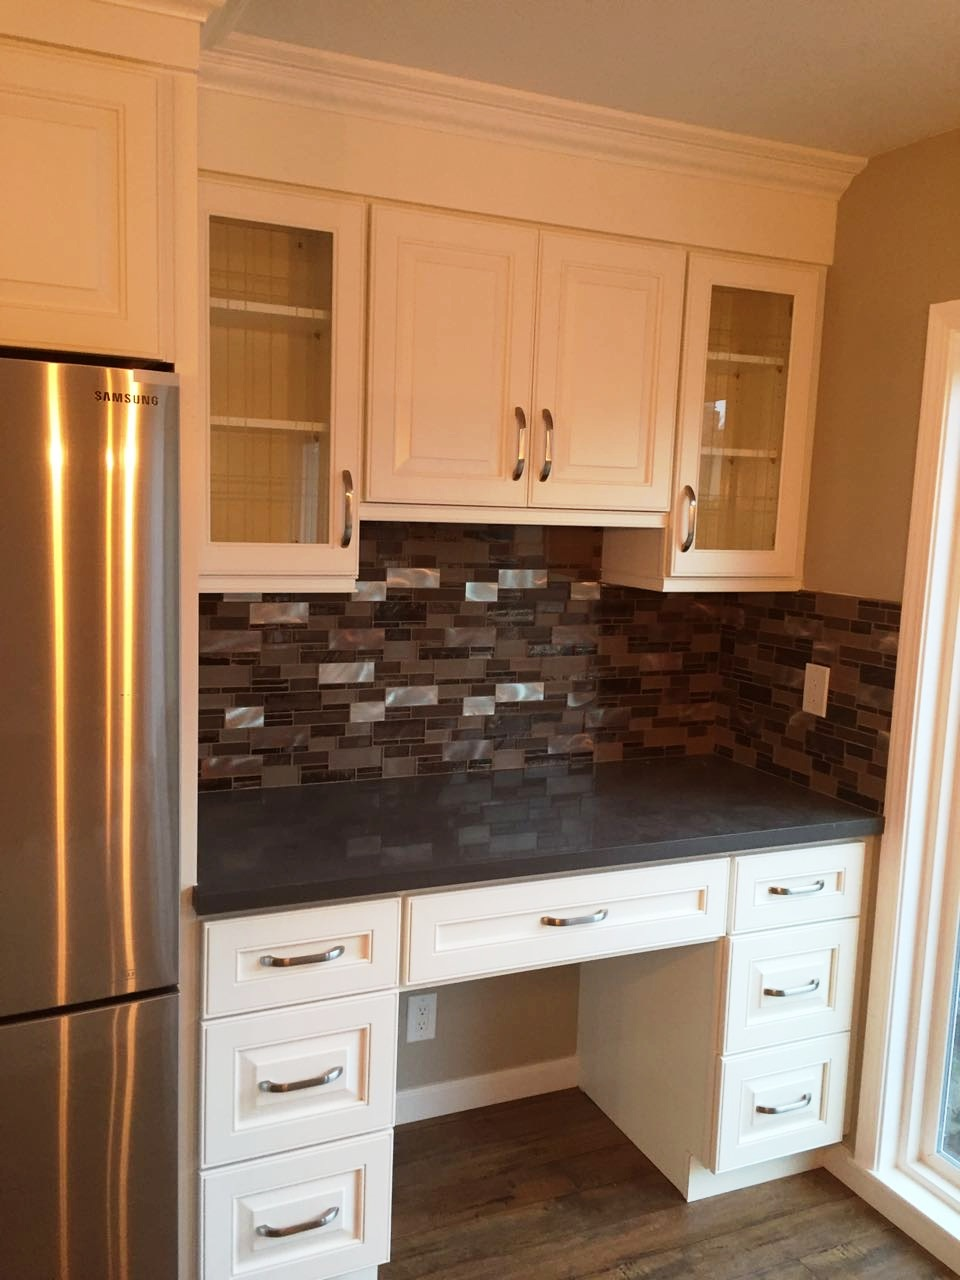 White maple cabinets - Off White Maple Raised Panel Kitchen Cabinets Gallery Image